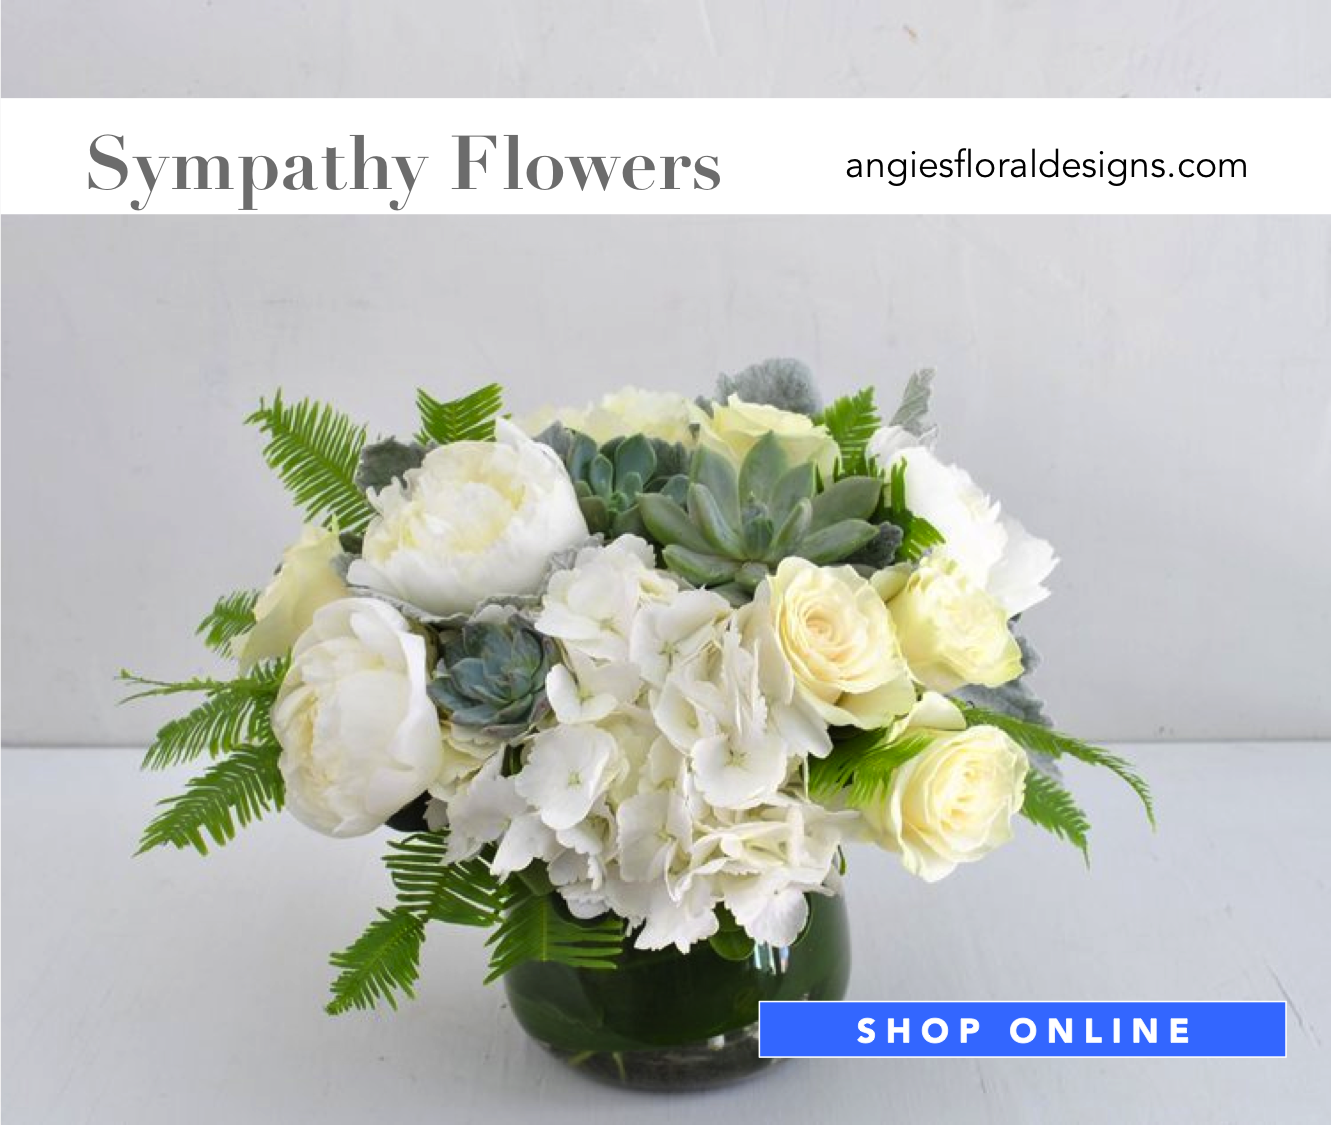 0-angies-floral-desig-n-order-sympathy-floral-sprays-flowers-sympathy-online-a-n-n-iversary-send-gifts-79912-handcrafted-gifts-same-day-delivery-roses-flowershop-el-paso-texas-79912-shop-online-flowers-florist-best-florist.png